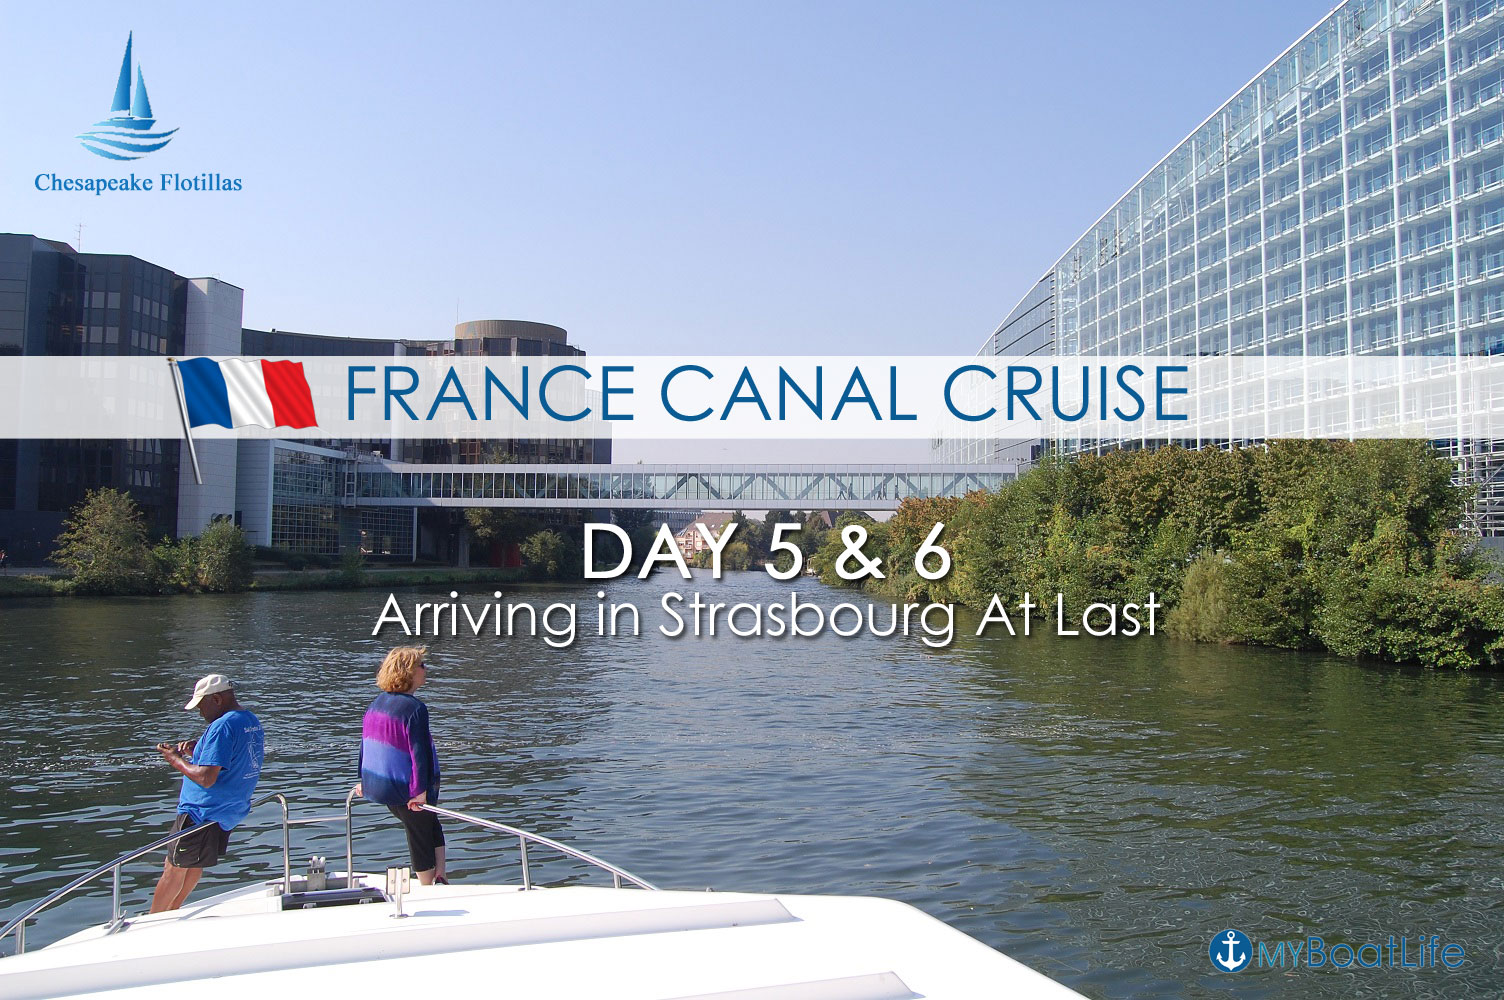 strasbourg day 5-6 france canal cruise